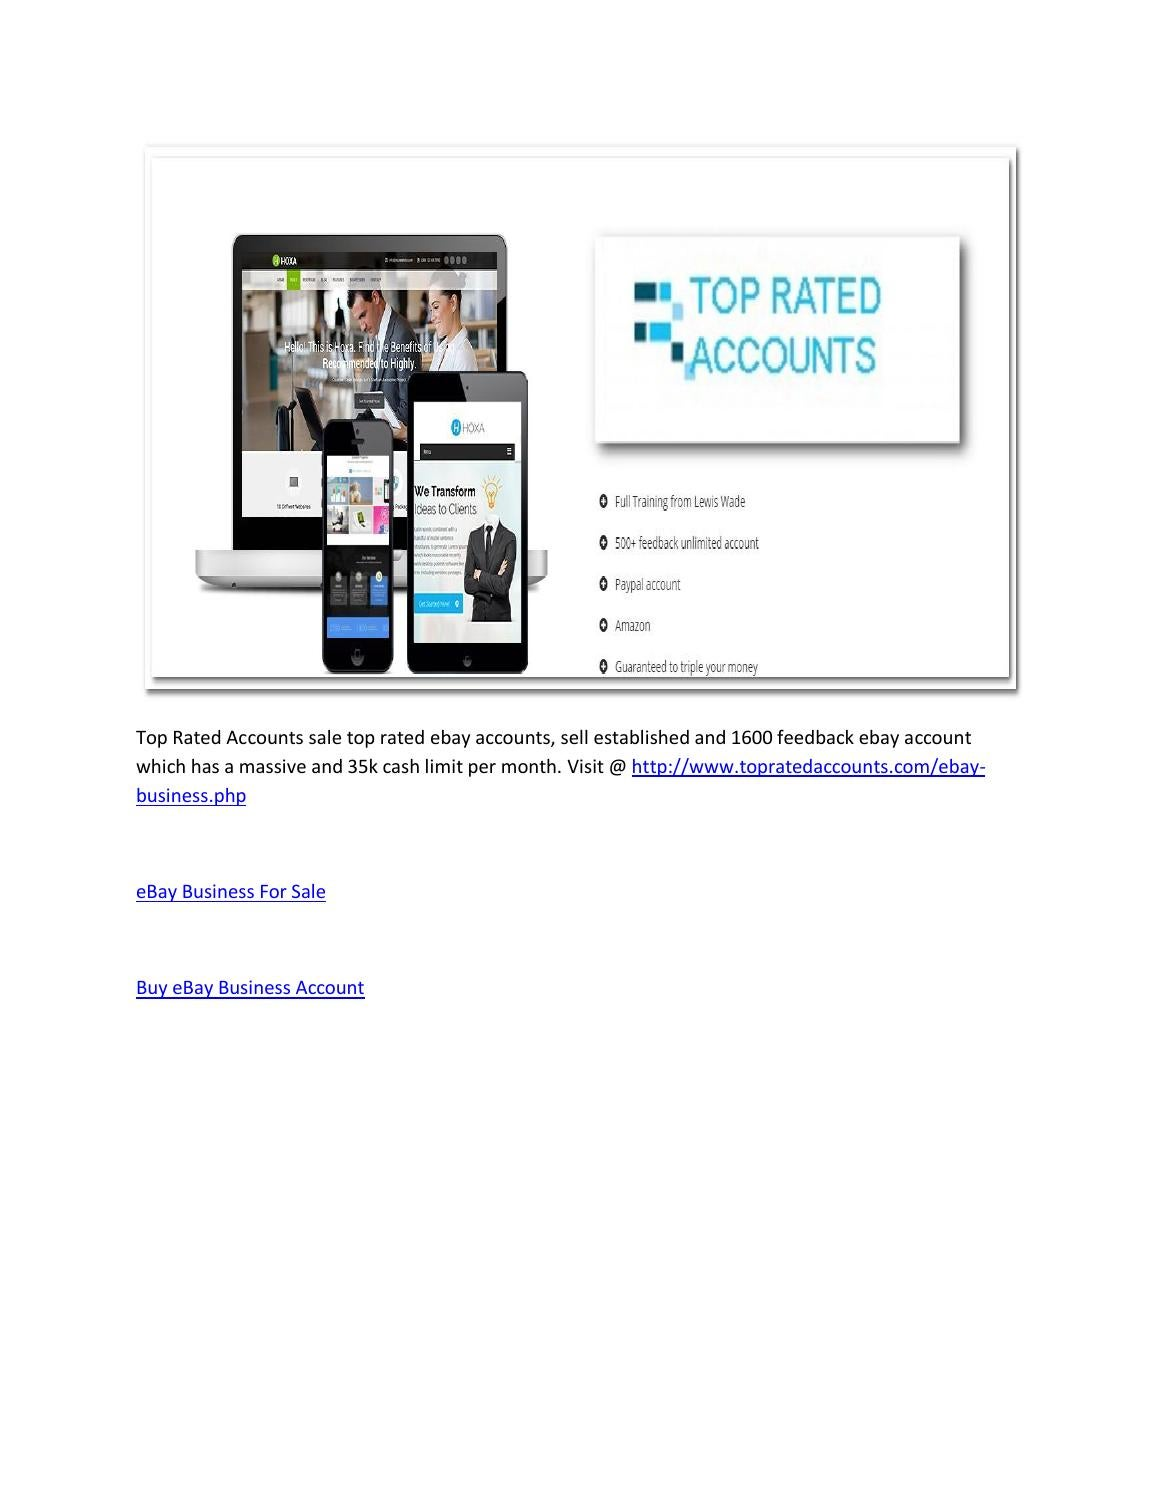 Ebay Business For Sale By Thenewss Issuu